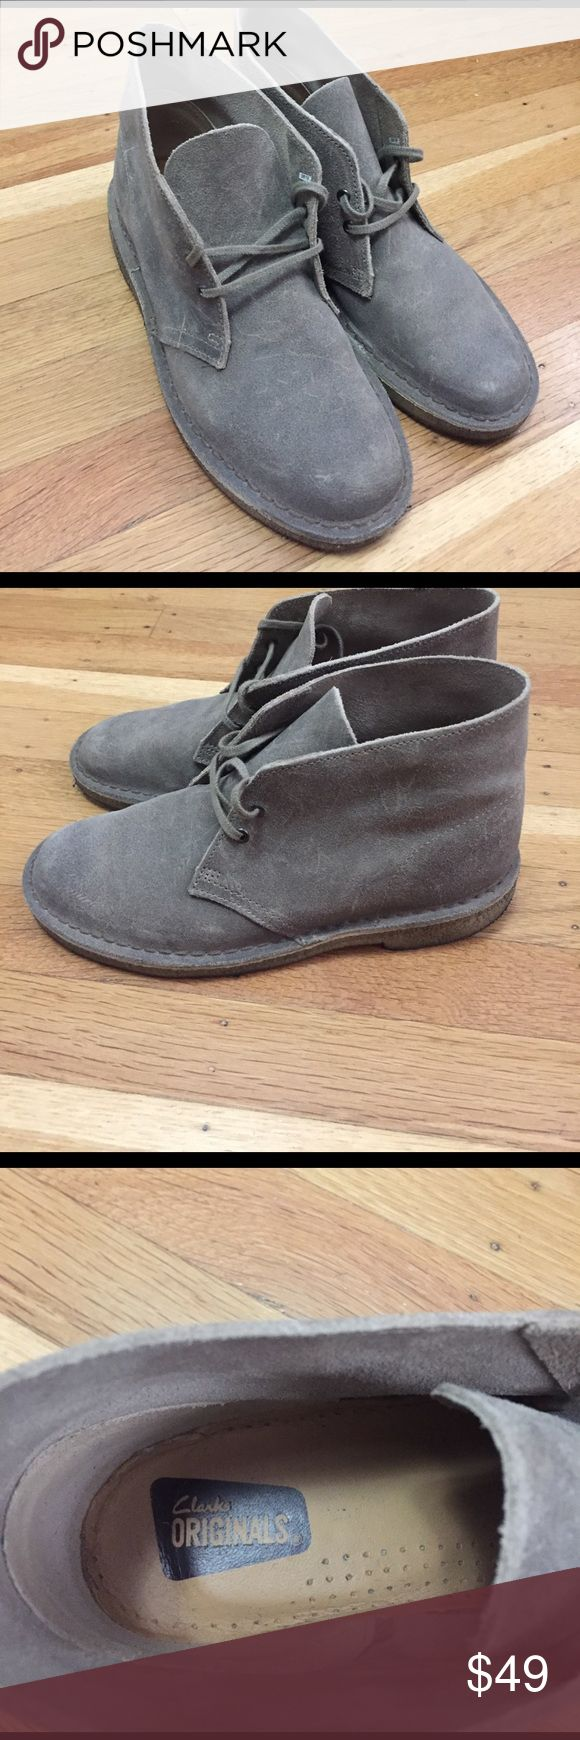 MENS clarks desert boots Men's clarks desert boots in sand color. Suede with gum soles. Size 6 in men's and 8 in women's. They're unisex shoes. Clarks Shoes Boots